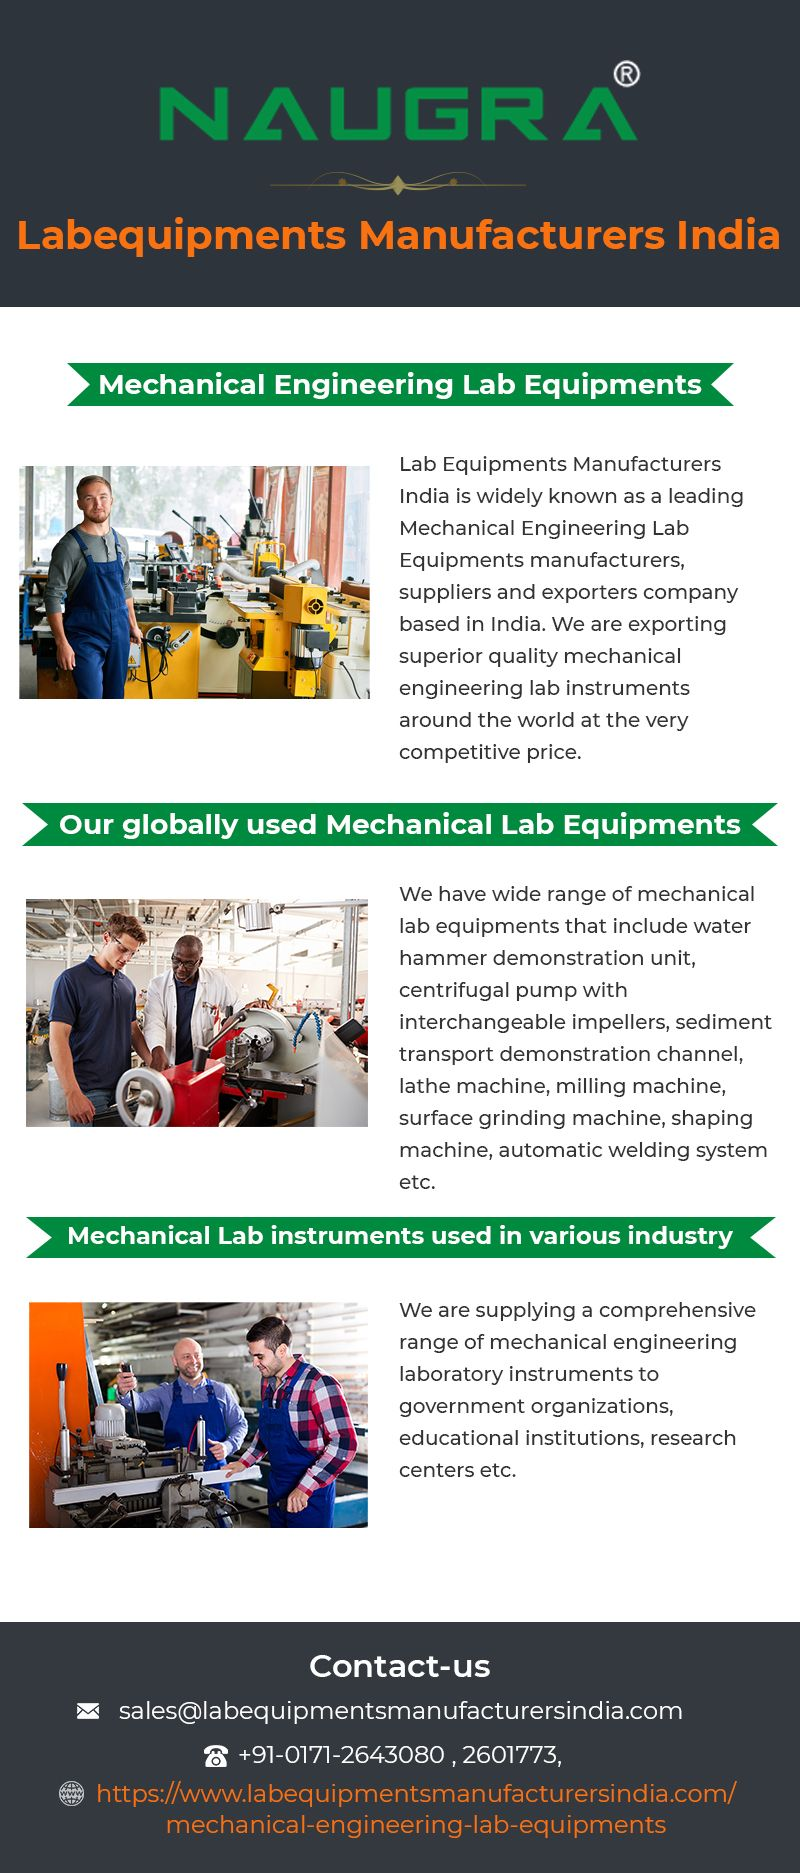 Lab Equipments Manufacturers India is the largest Mechanical